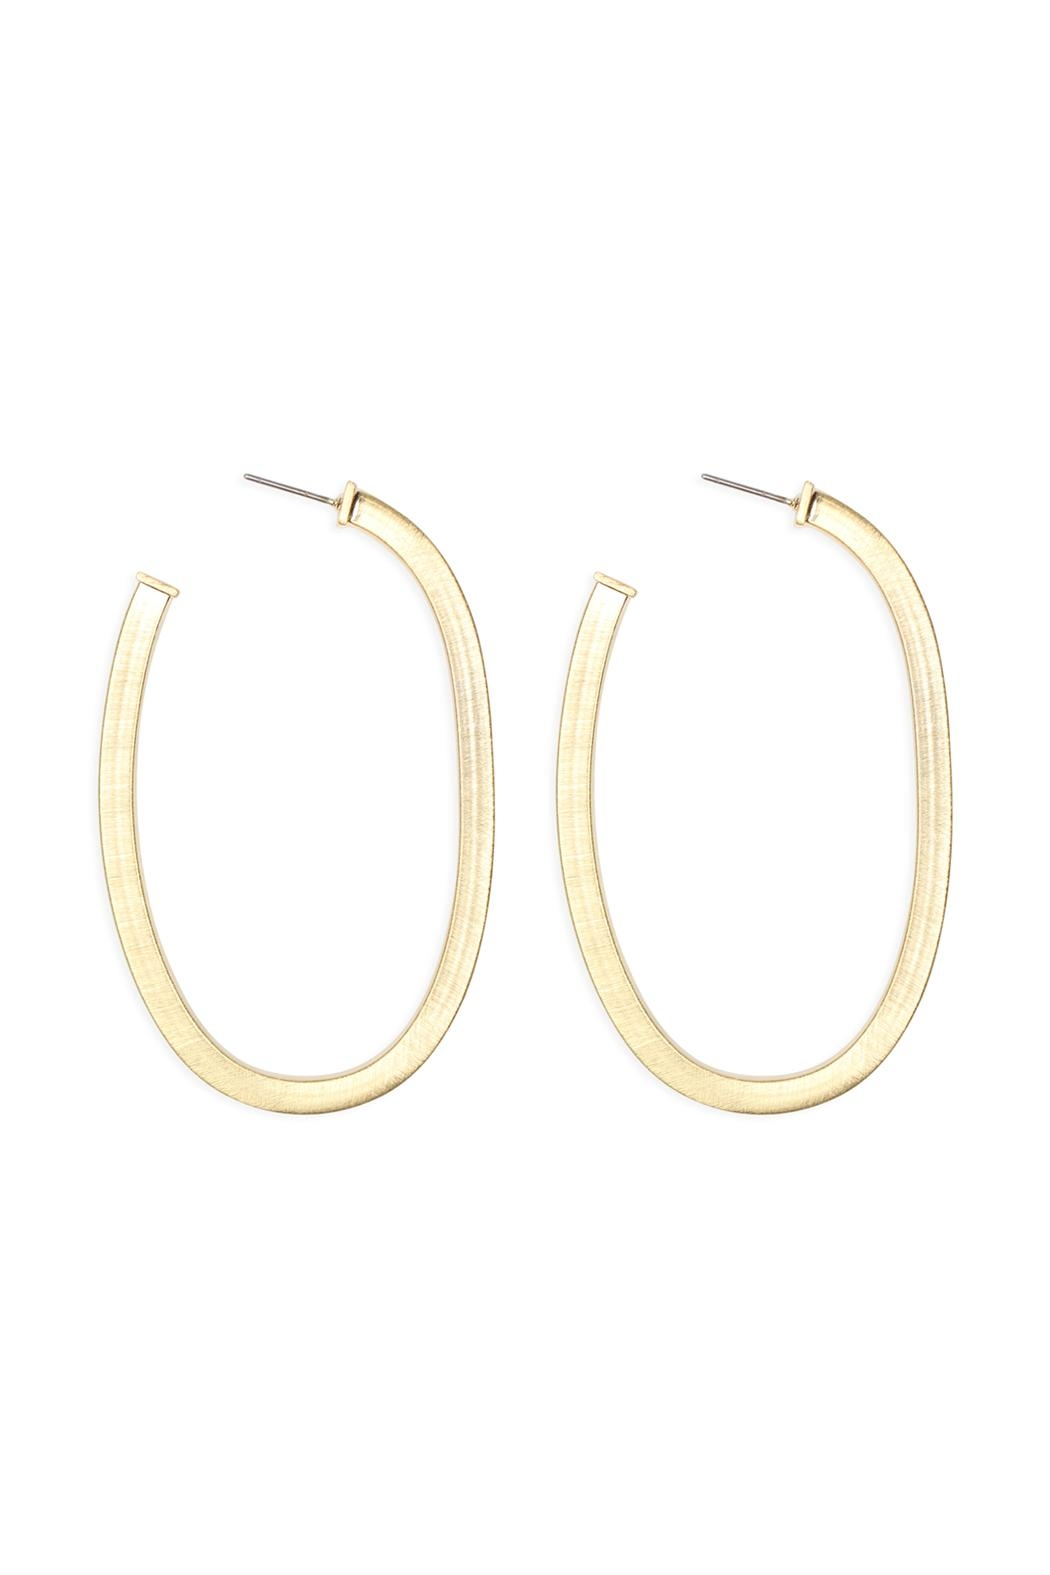 Riah Fashion 1.75 Inch-'U'-Pipe-Satin Finish-Hoop-Earrings - Front Cropped Image